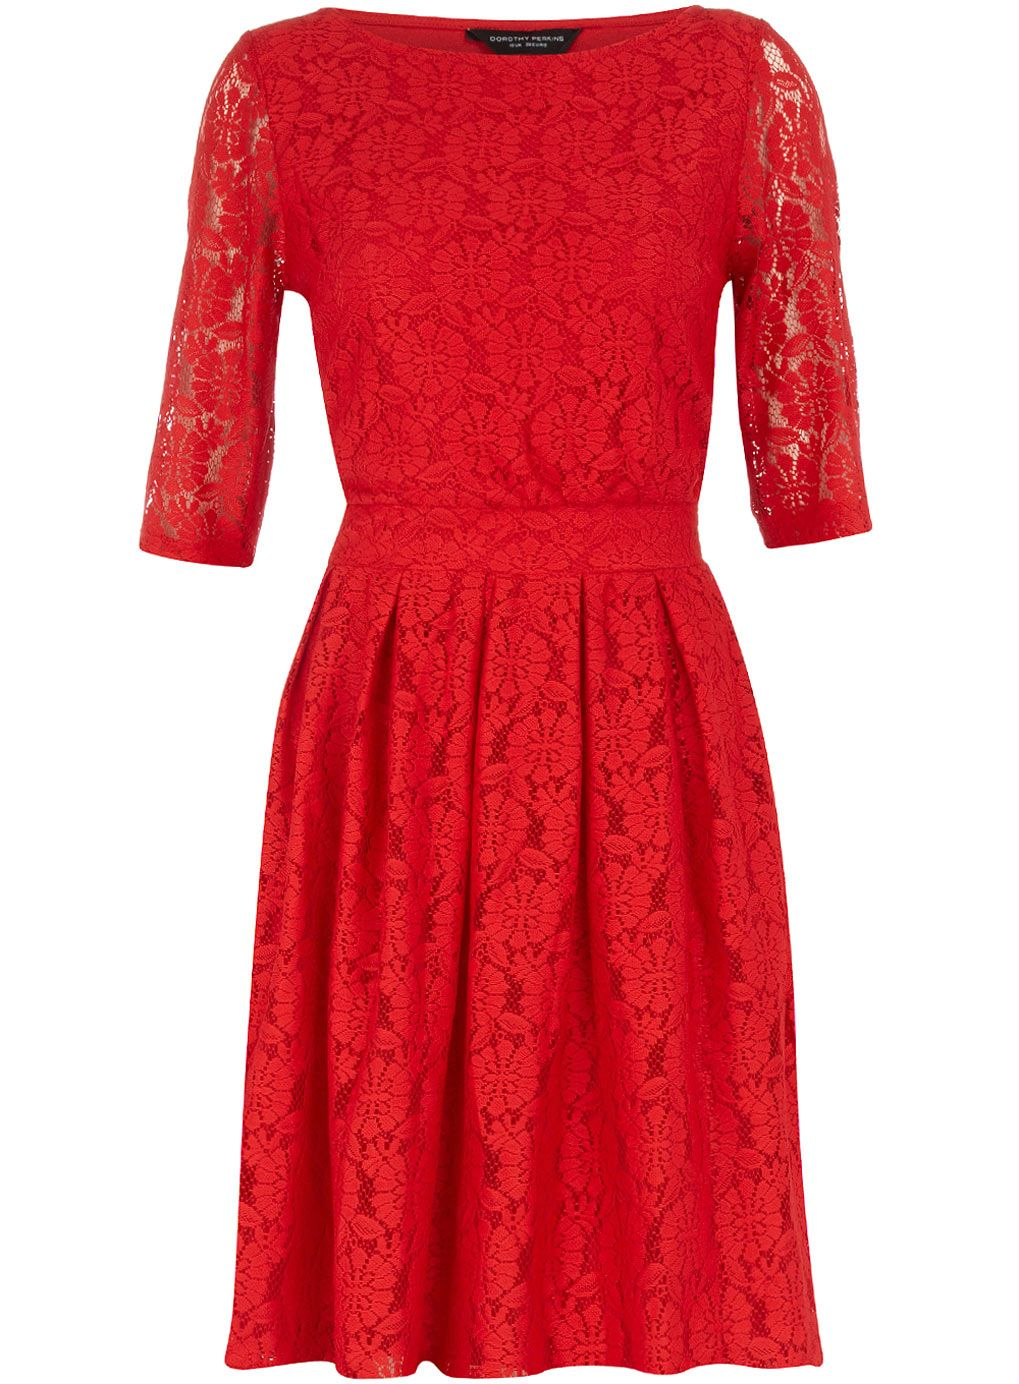 Lace dress dorothy perkins evening